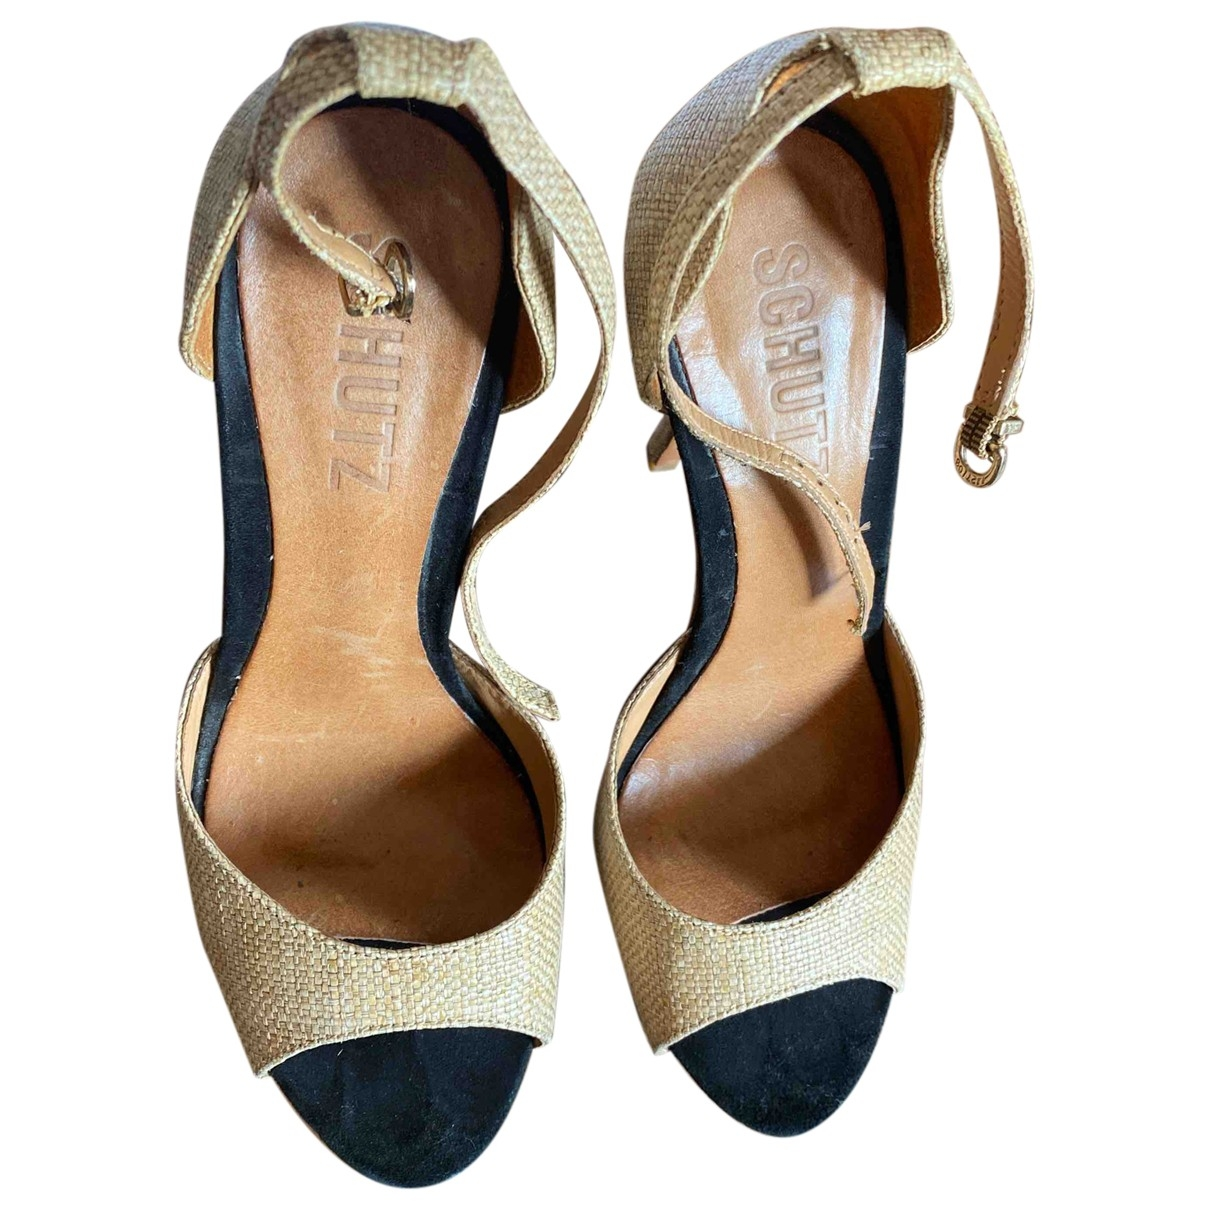 Schutz \N Beige Cloth Heels for Women 39 EU